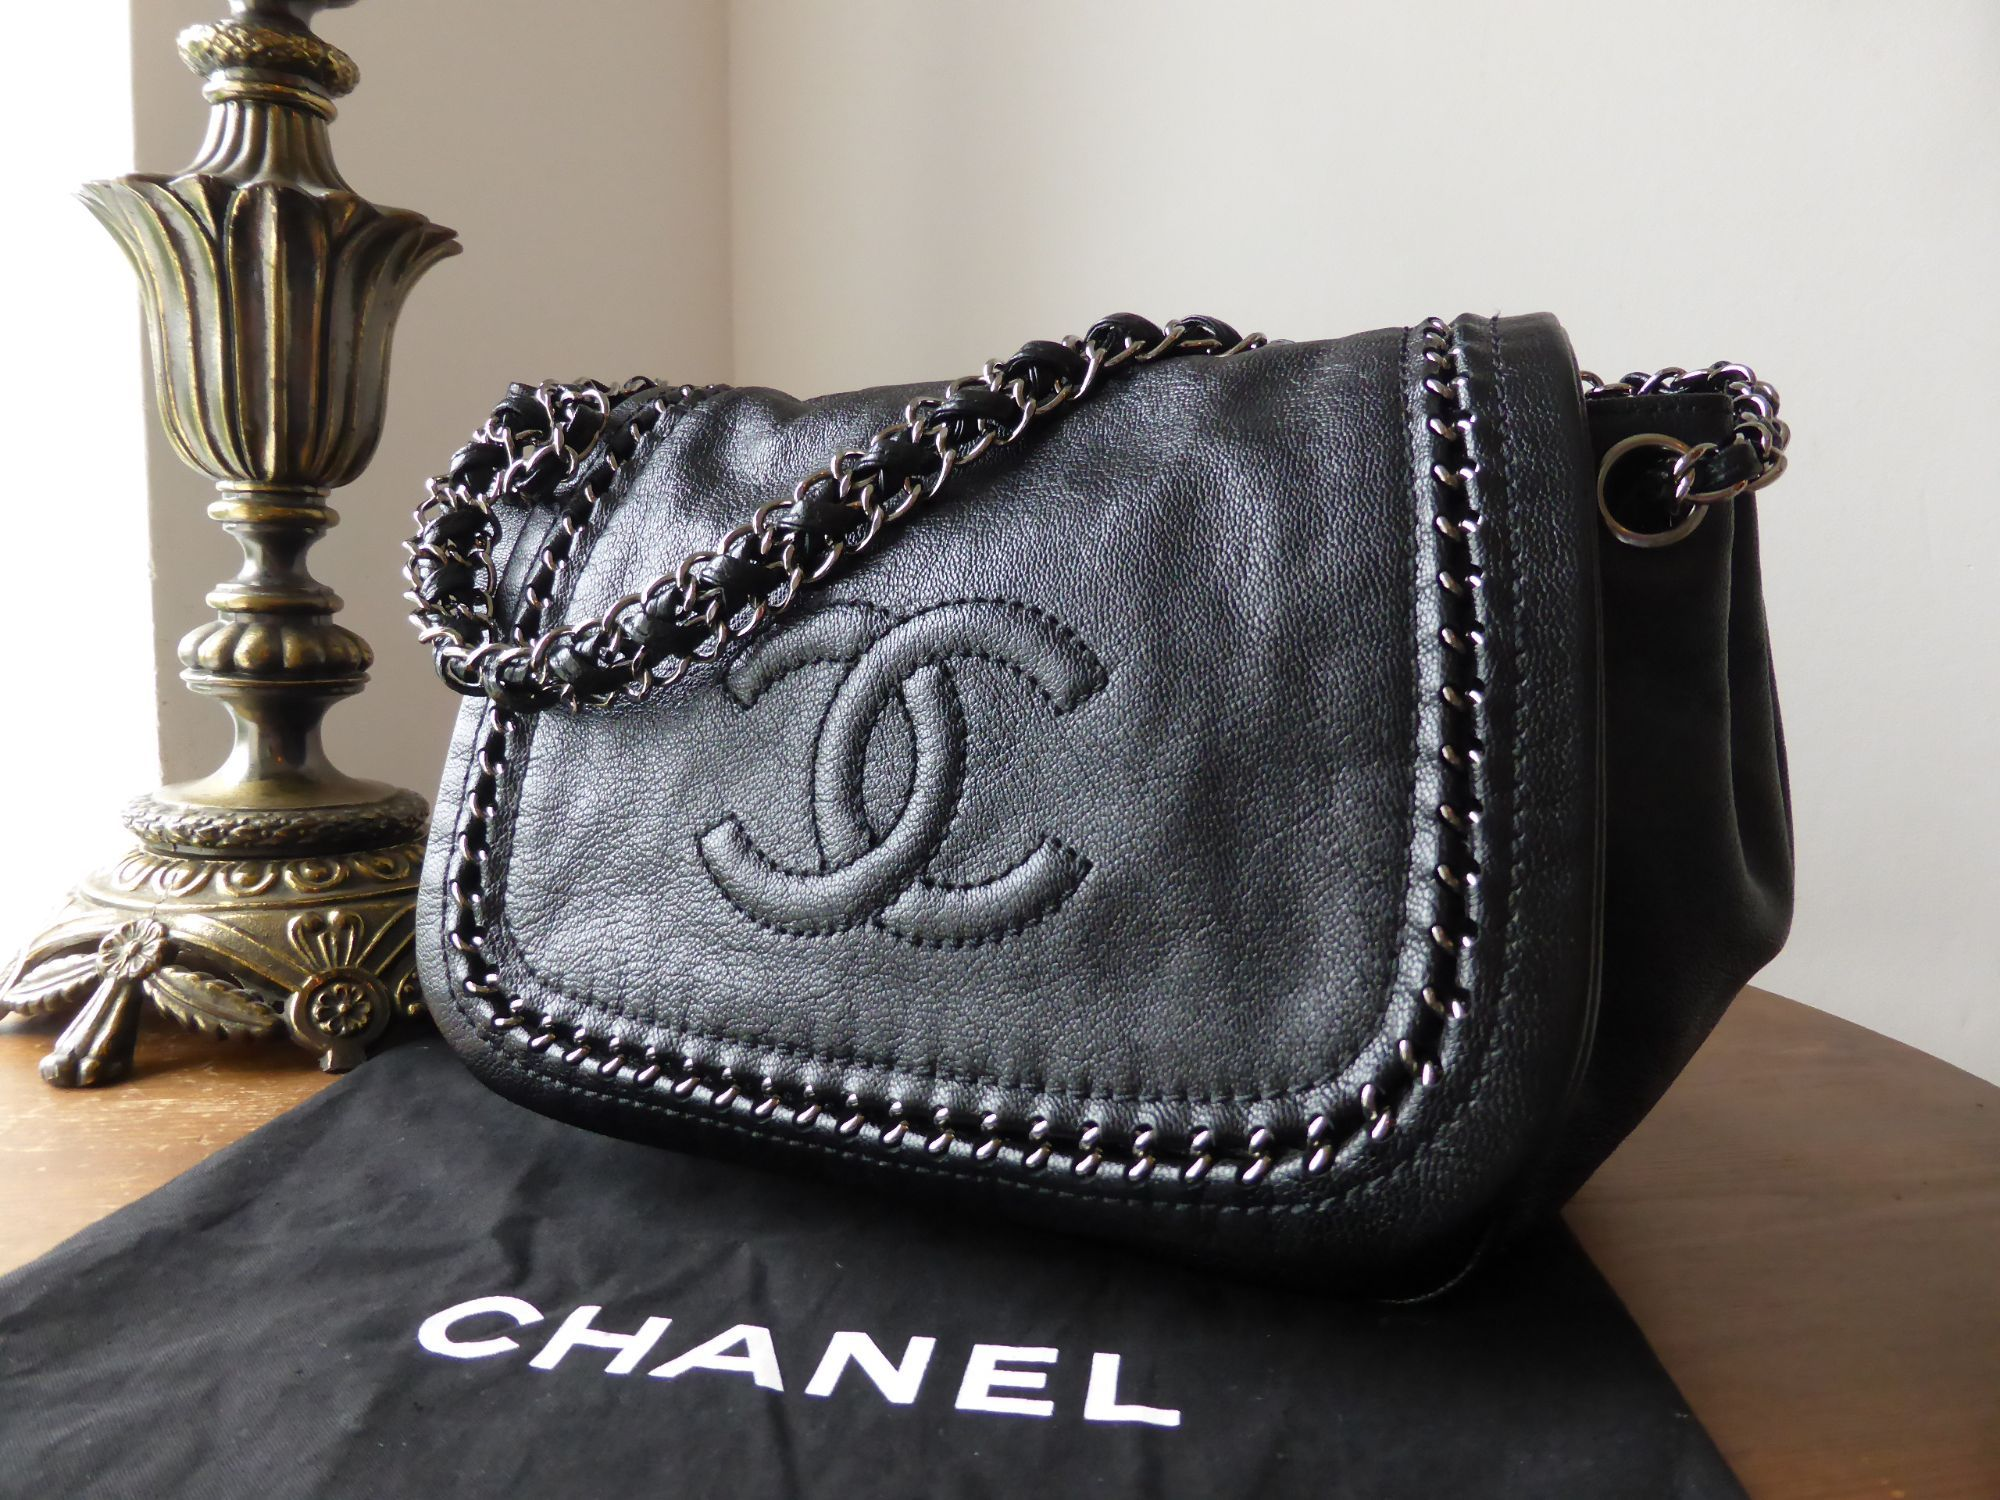 49dd8bf660d9 Chanel Luxe Ligne Flap Bag in Metallic Black Goatskin  gt  https   www